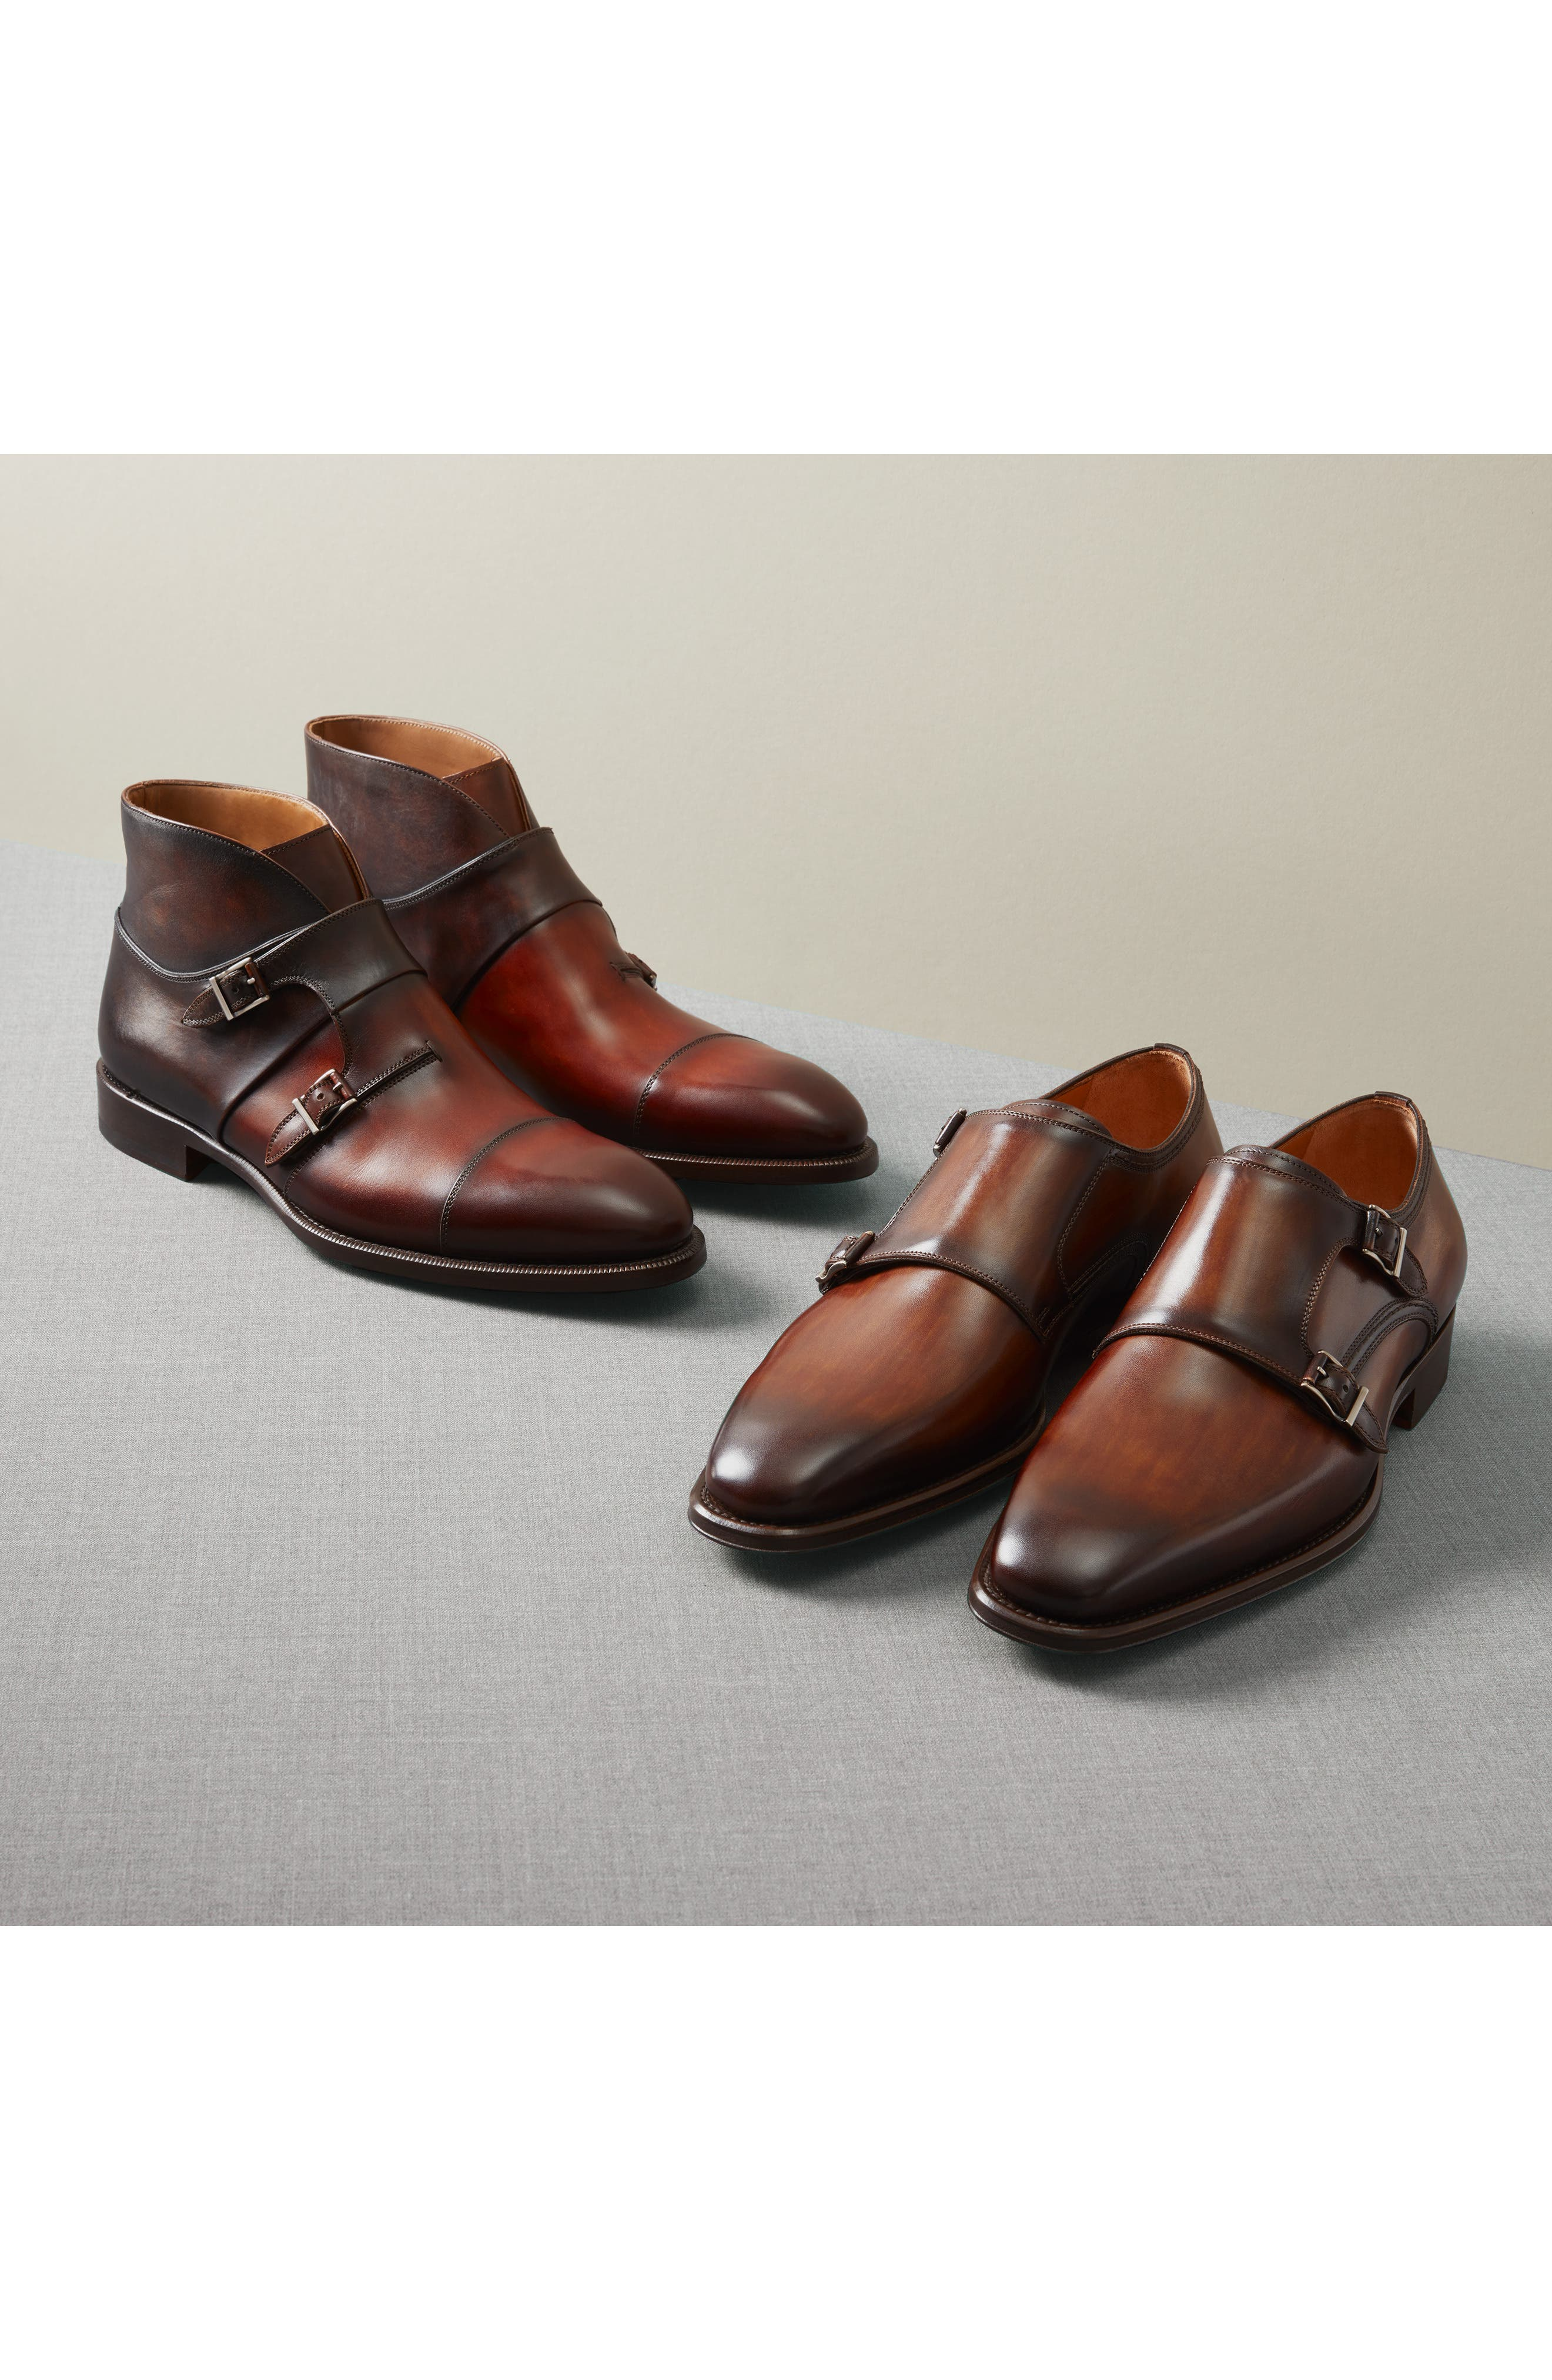 Landon Double Strap Monk Shoe,                             Alternate thumbnail 7, color,                             TOBACCO LEATHER